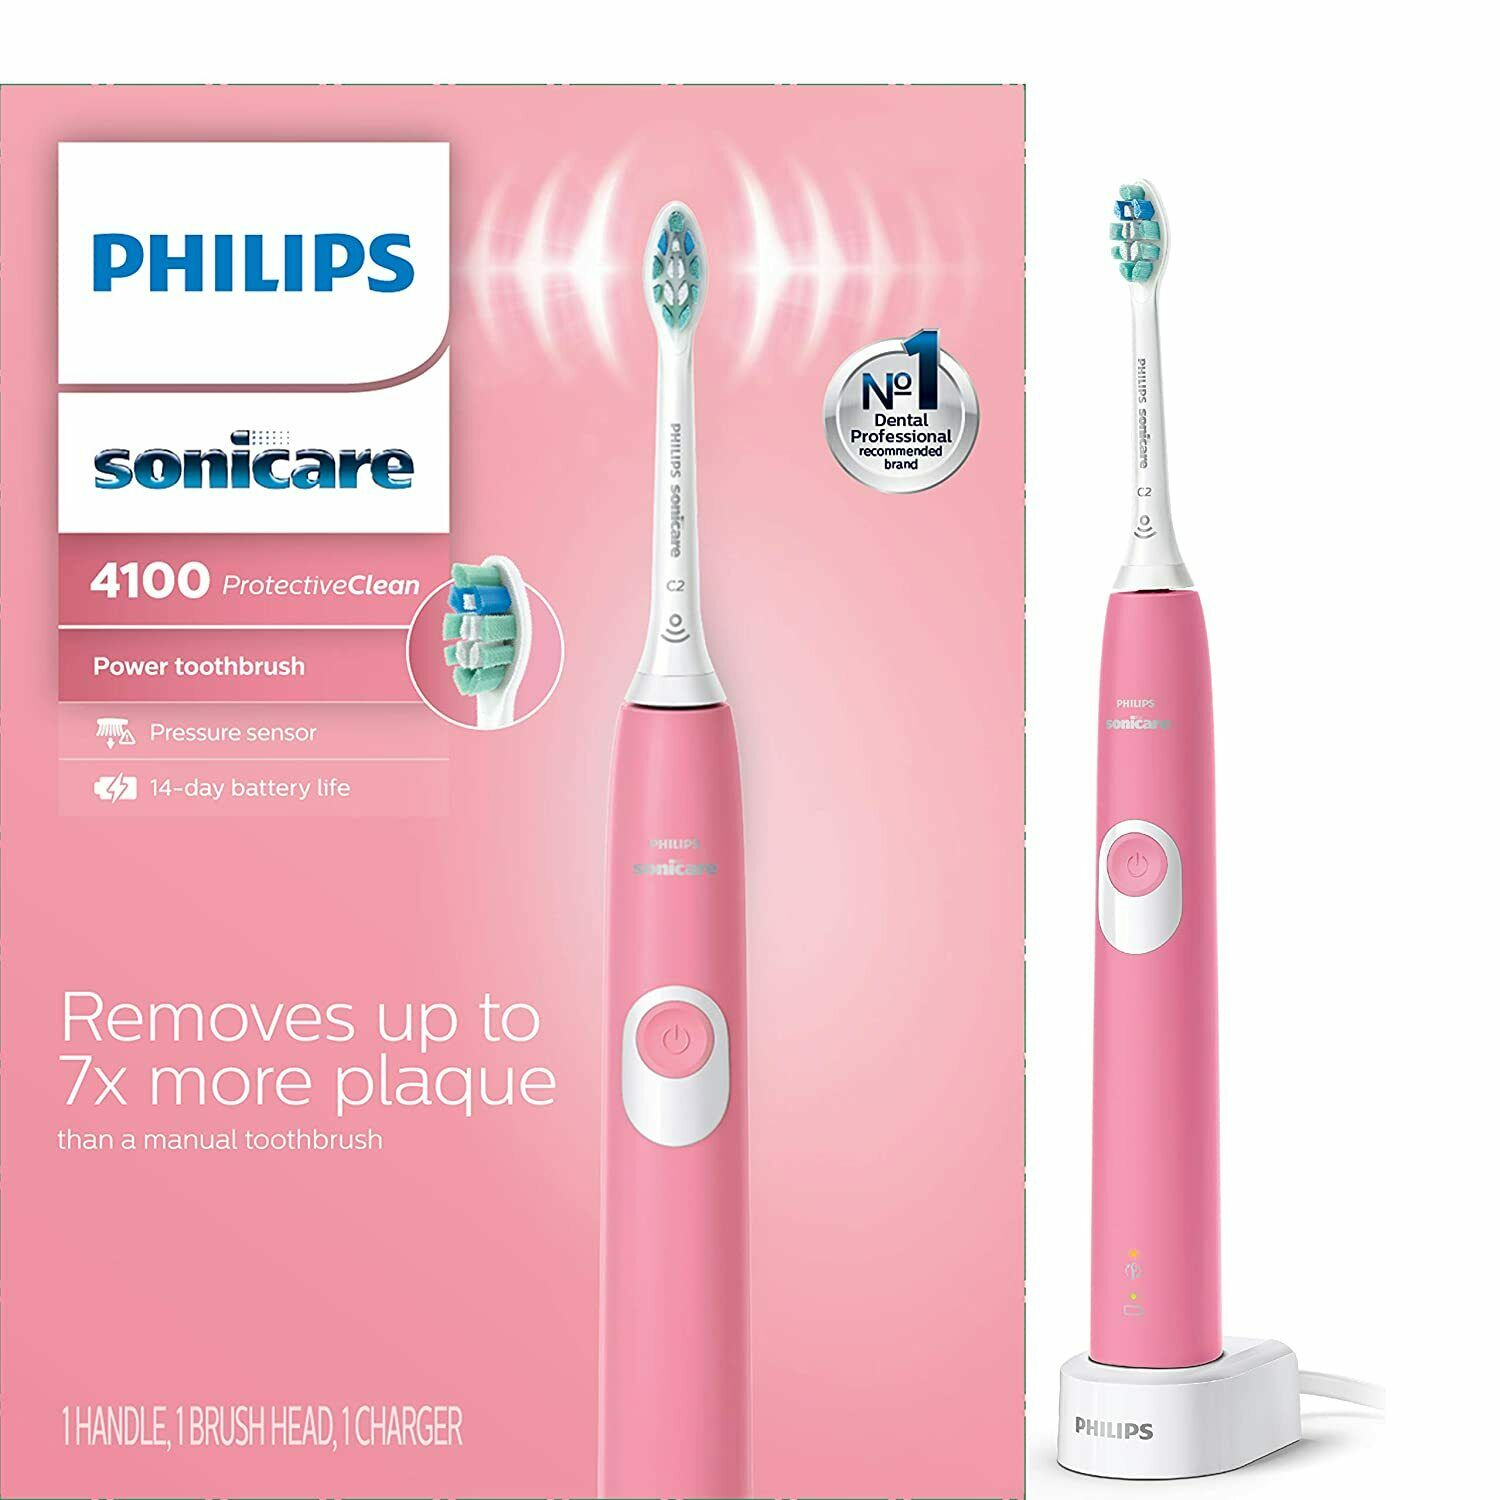 New Philips Sonicare 4100 Protective Clean Pink Edition Toot